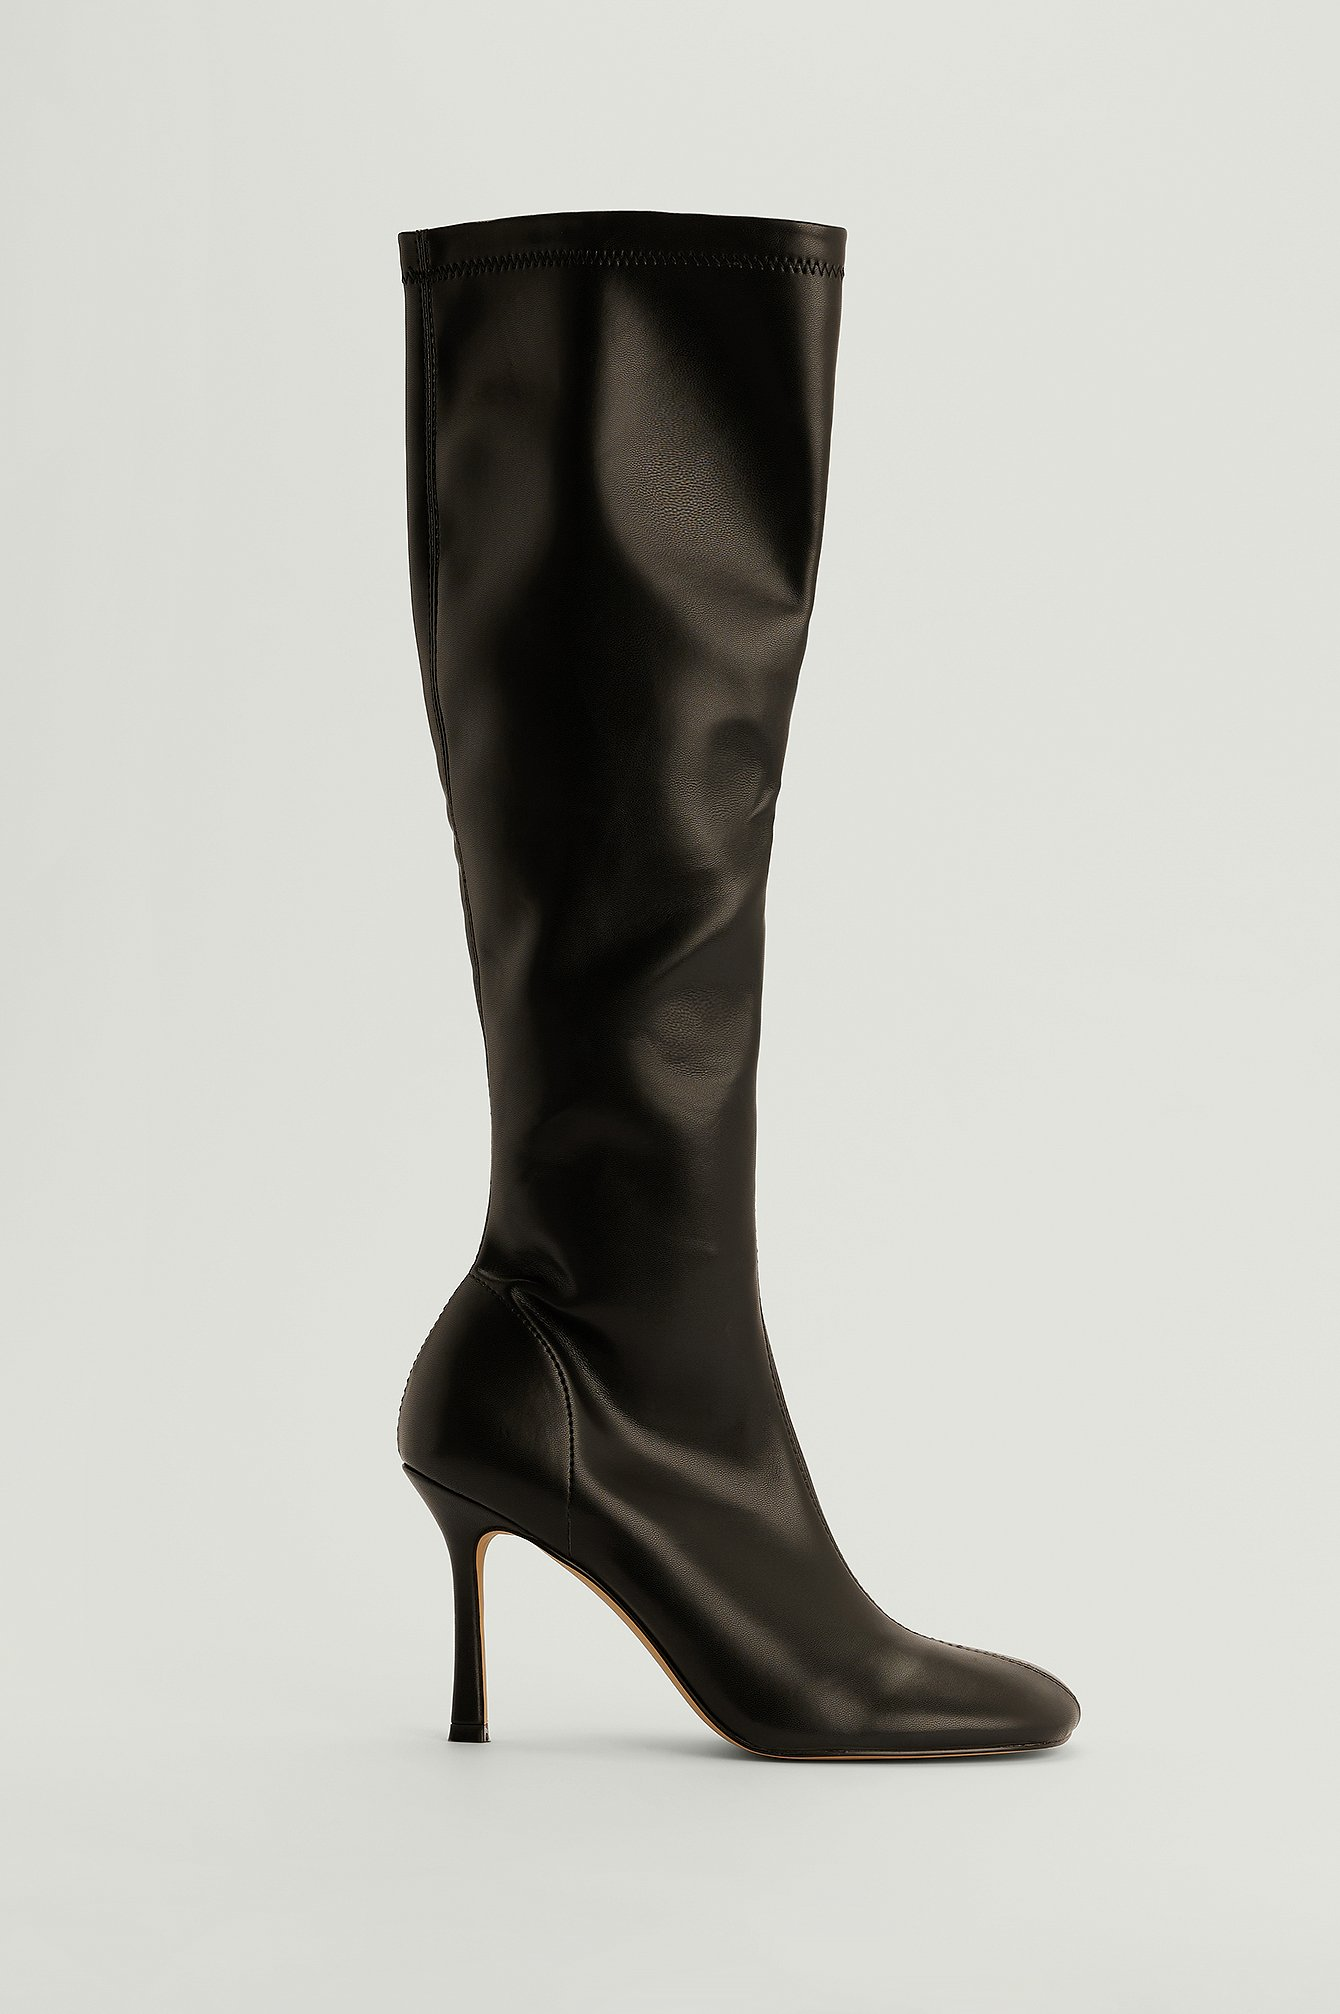 NA-KD Shoes Knee High Rounded Toe Boots - Black